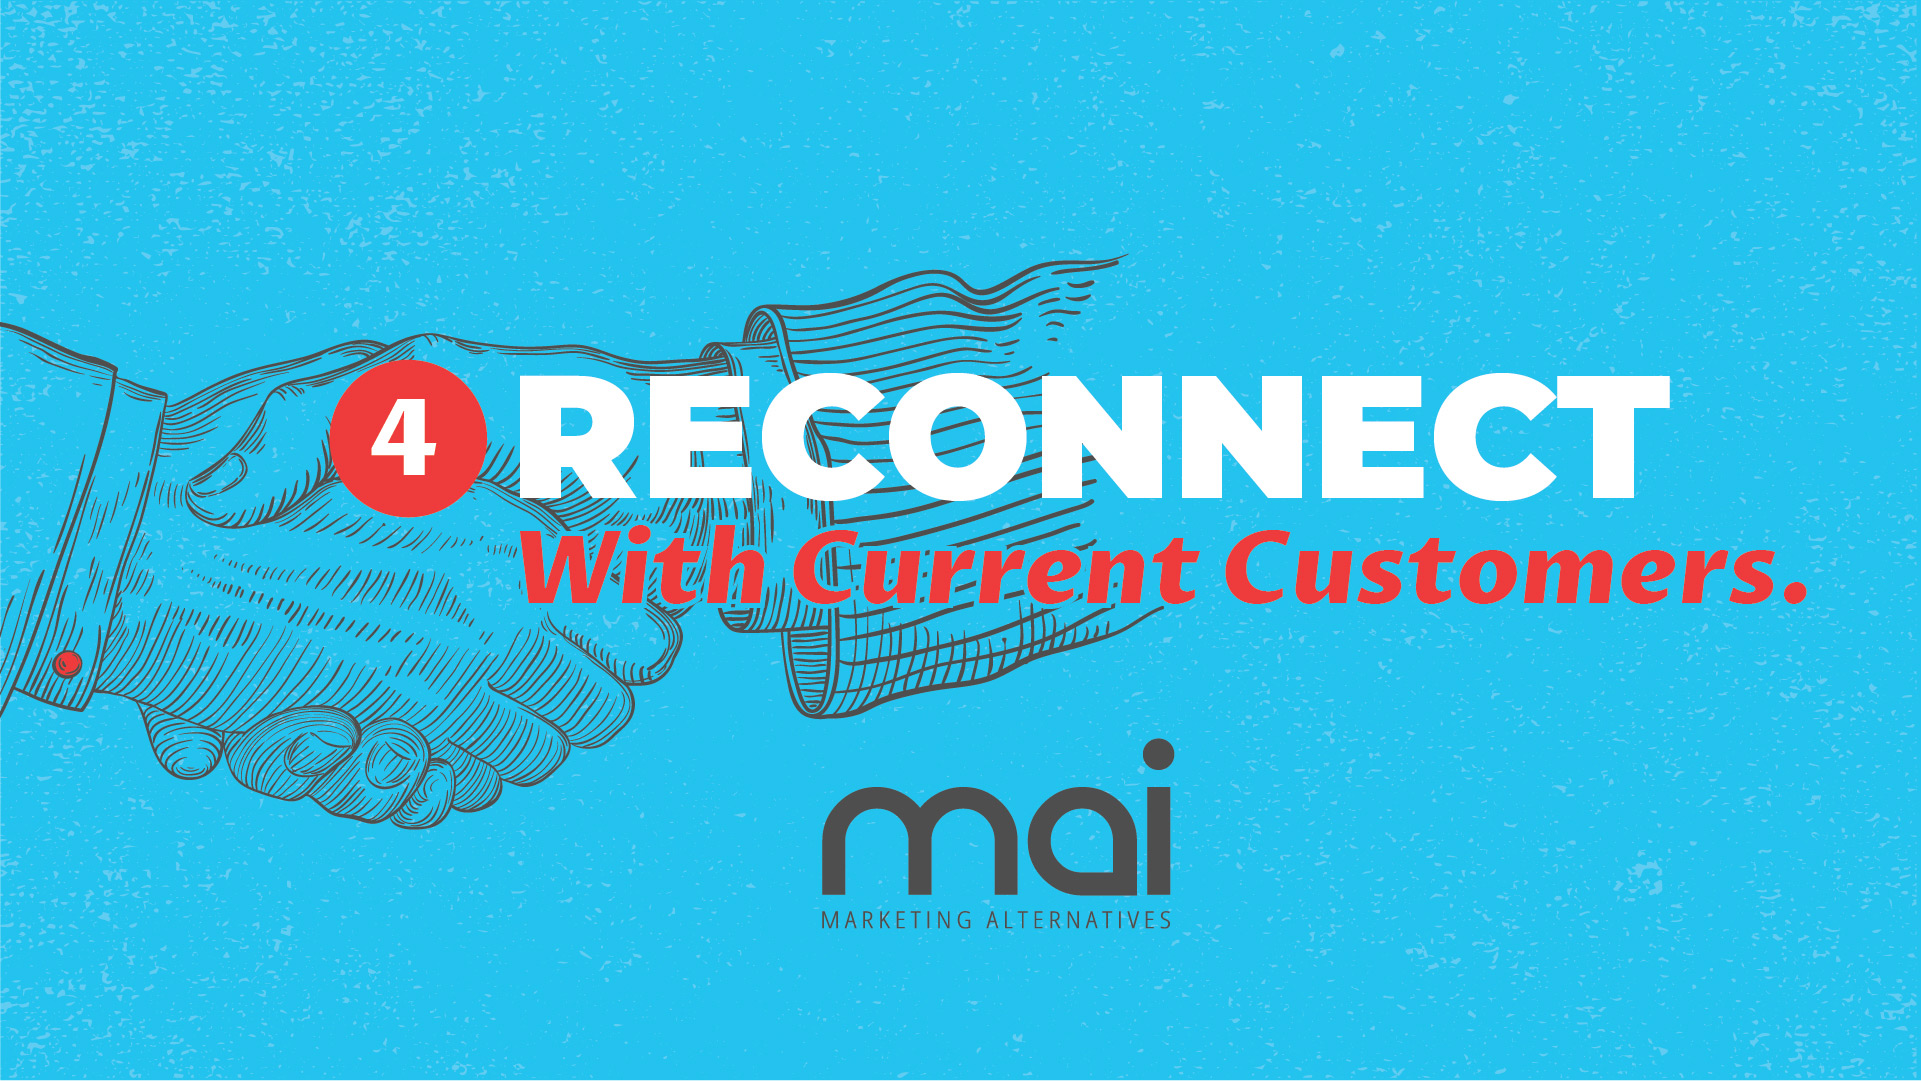 Reconnect With Current Customers